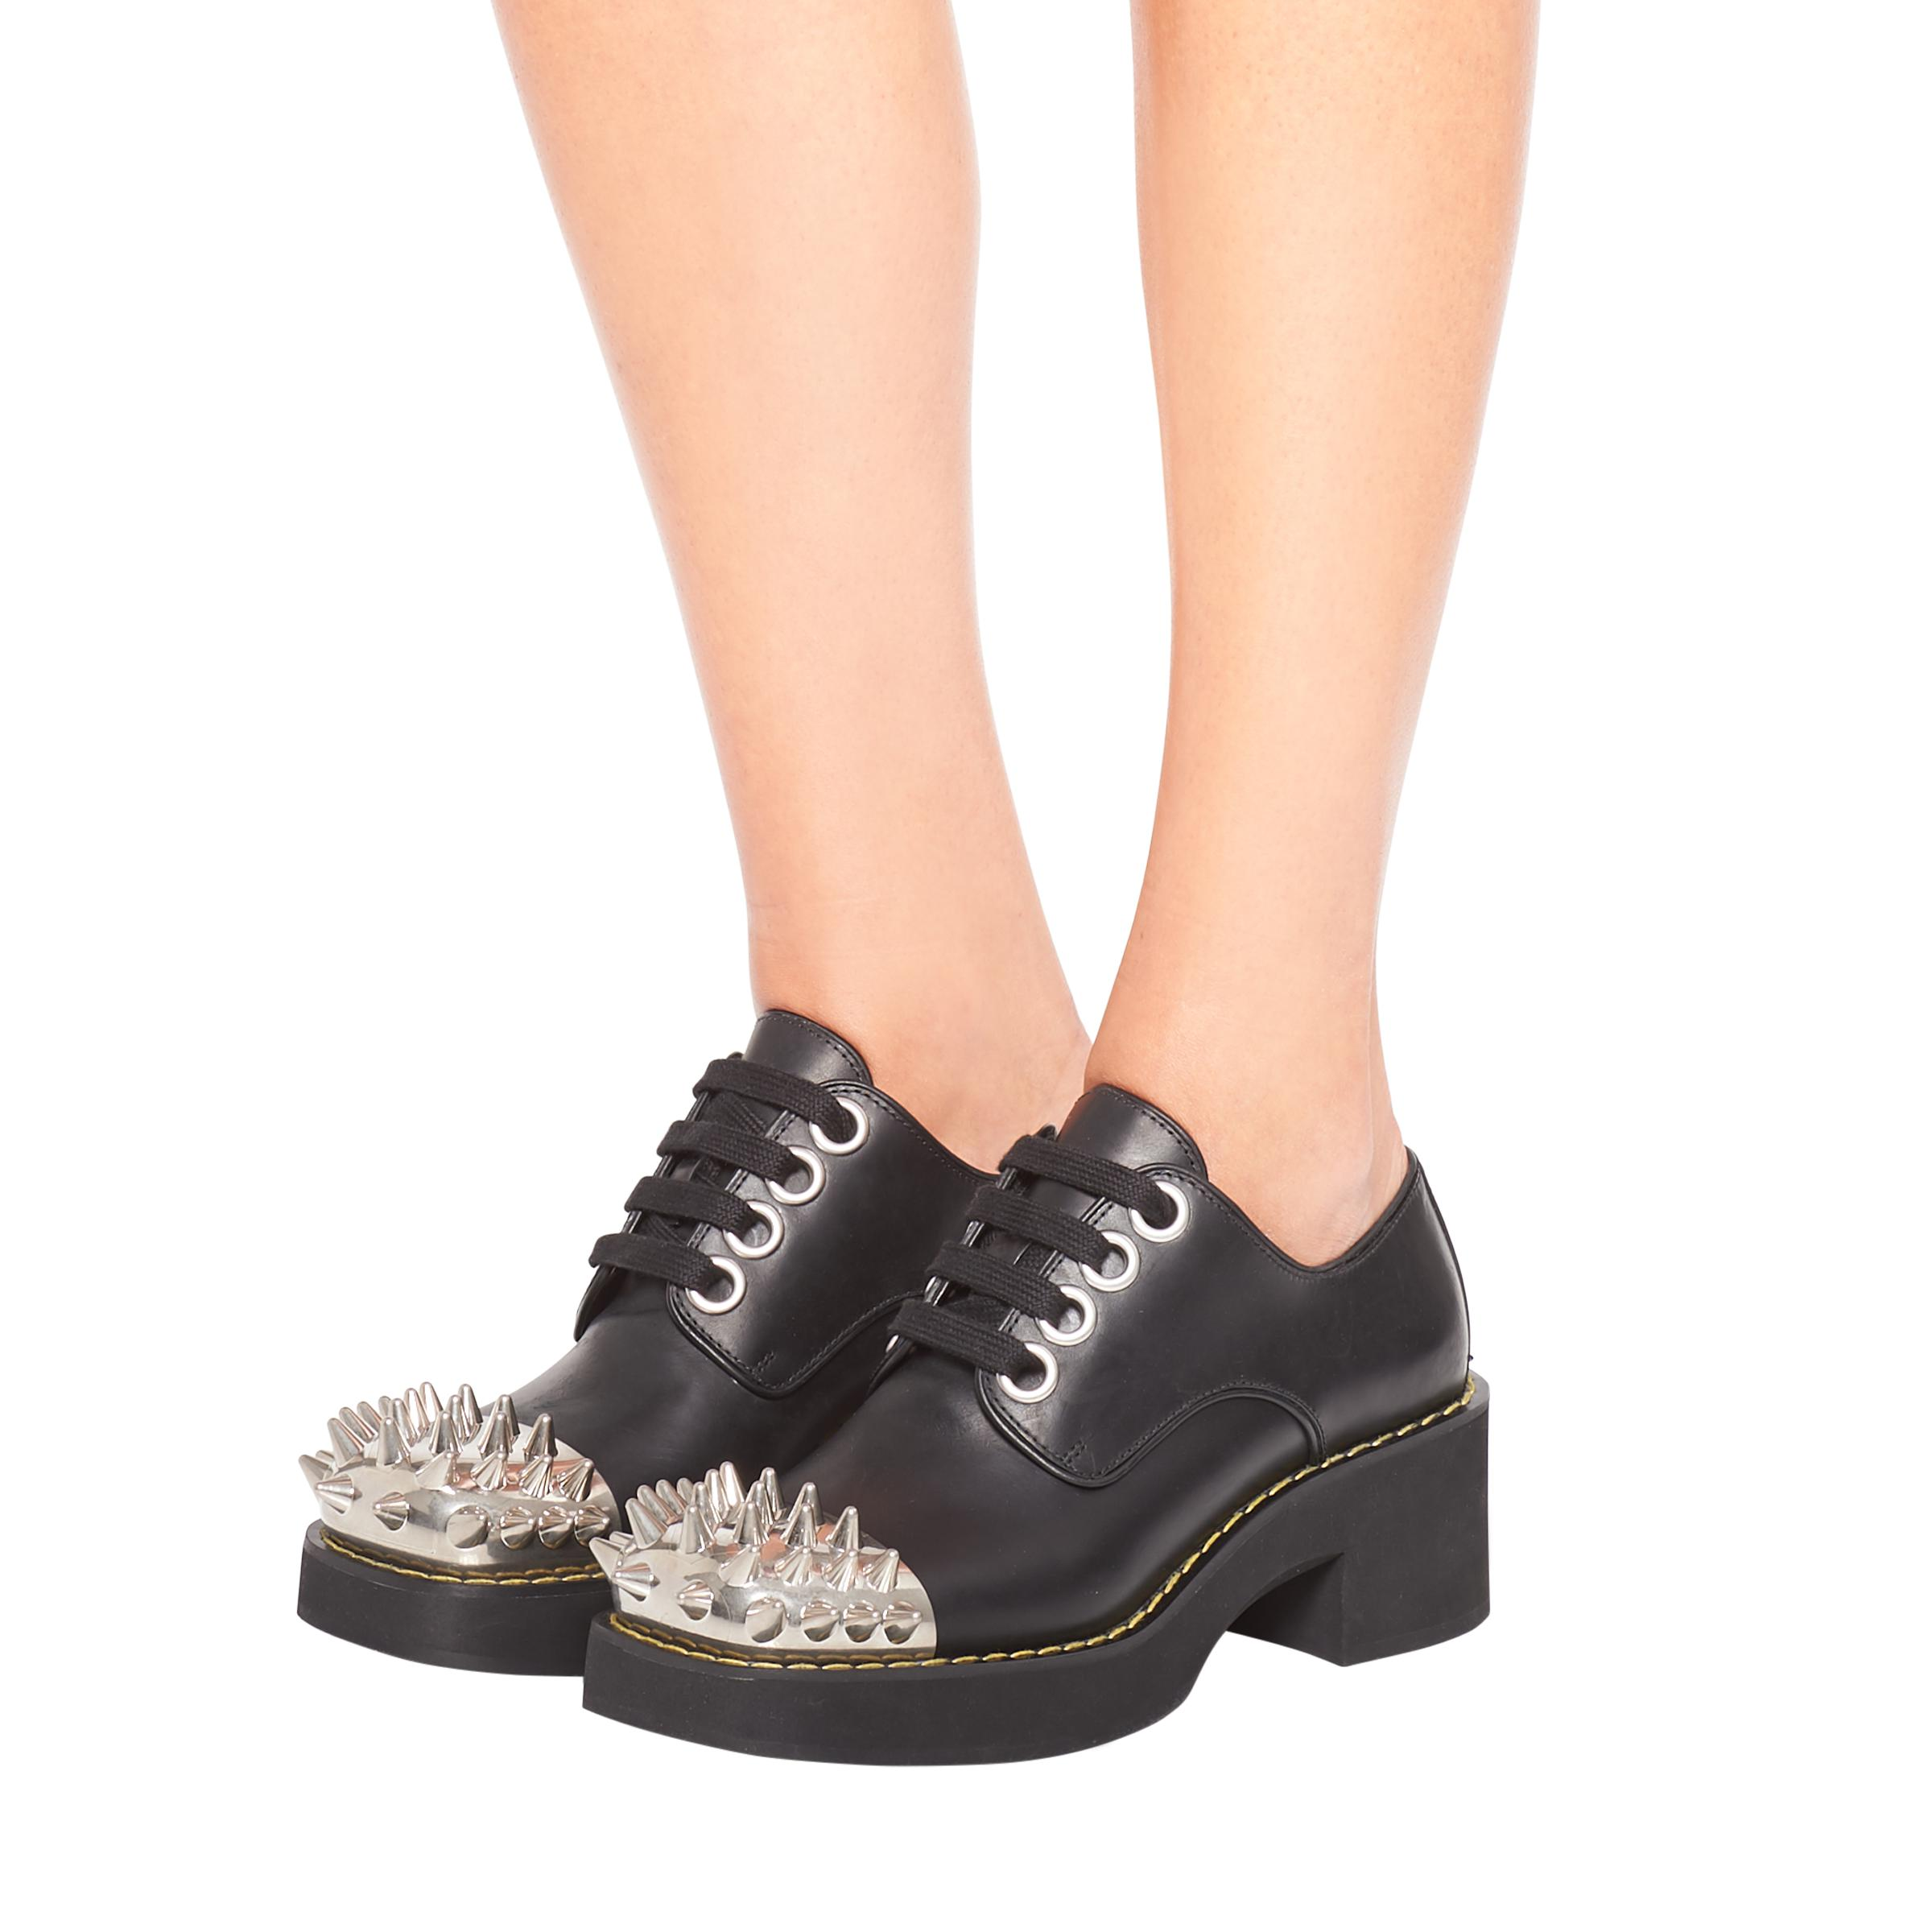 Studded Leather Laced Derby Shoes Women Black 4